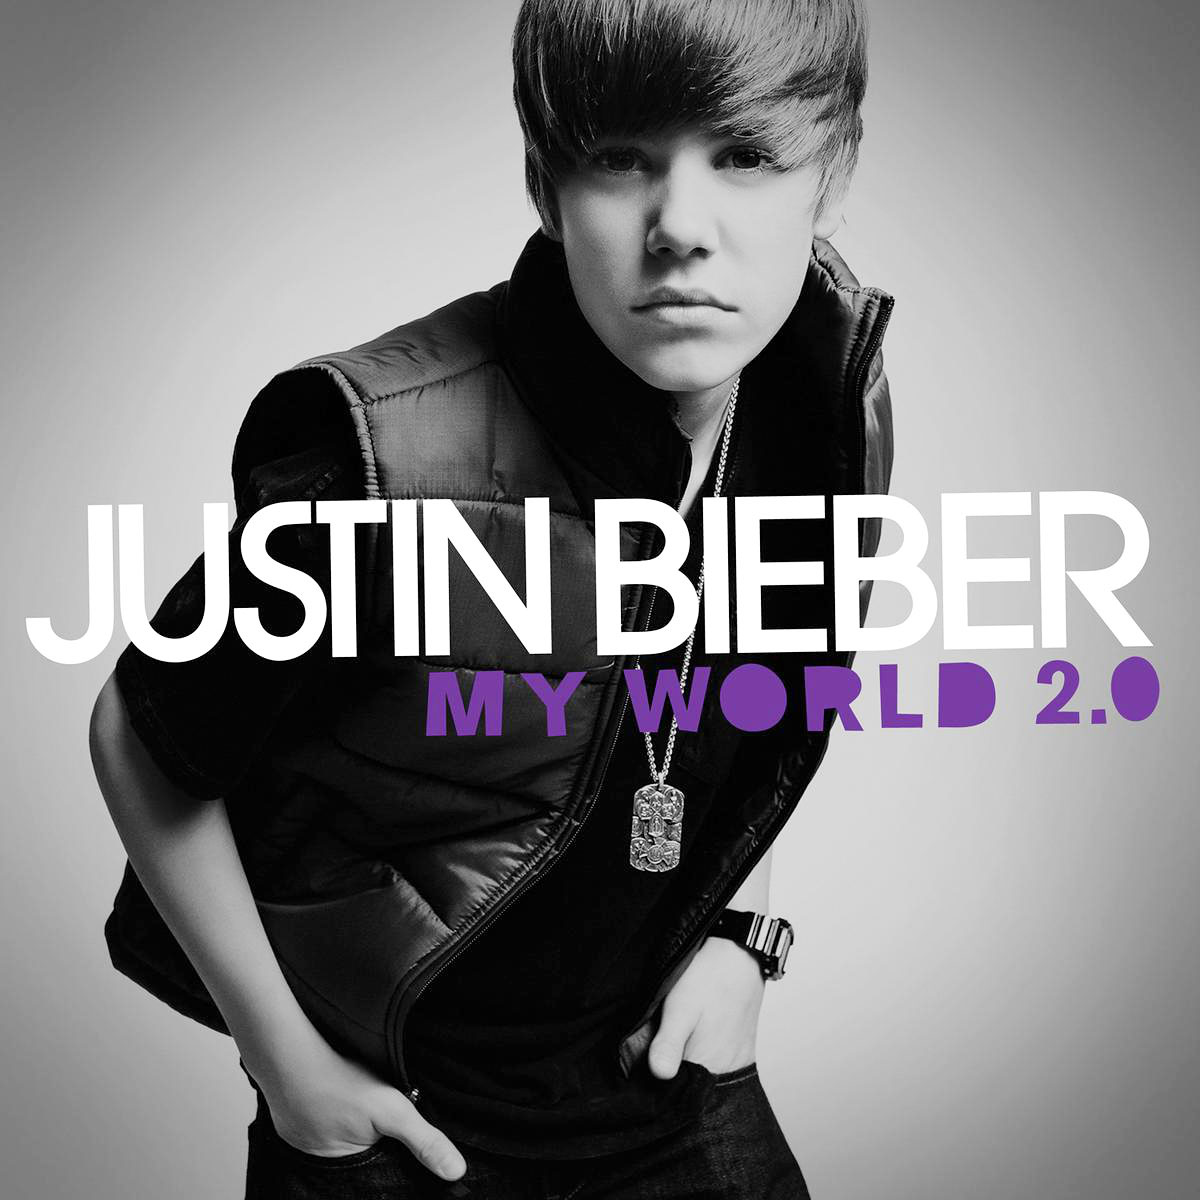 """Justin Bieber Through The Years My World 2.0 - Bieber's first album, My World 2.0 , debuted at No. 1 on the Billboard 200, making him the youngest solo male artist to top the chart since Stevie Wonder in 1963. The disc included collaborations with Ludacris (""""Baby"""") and Sean Kingston (""""Eenie Meenie""""), and was nominated for Best Pop Vocal Album at the Grammys."""